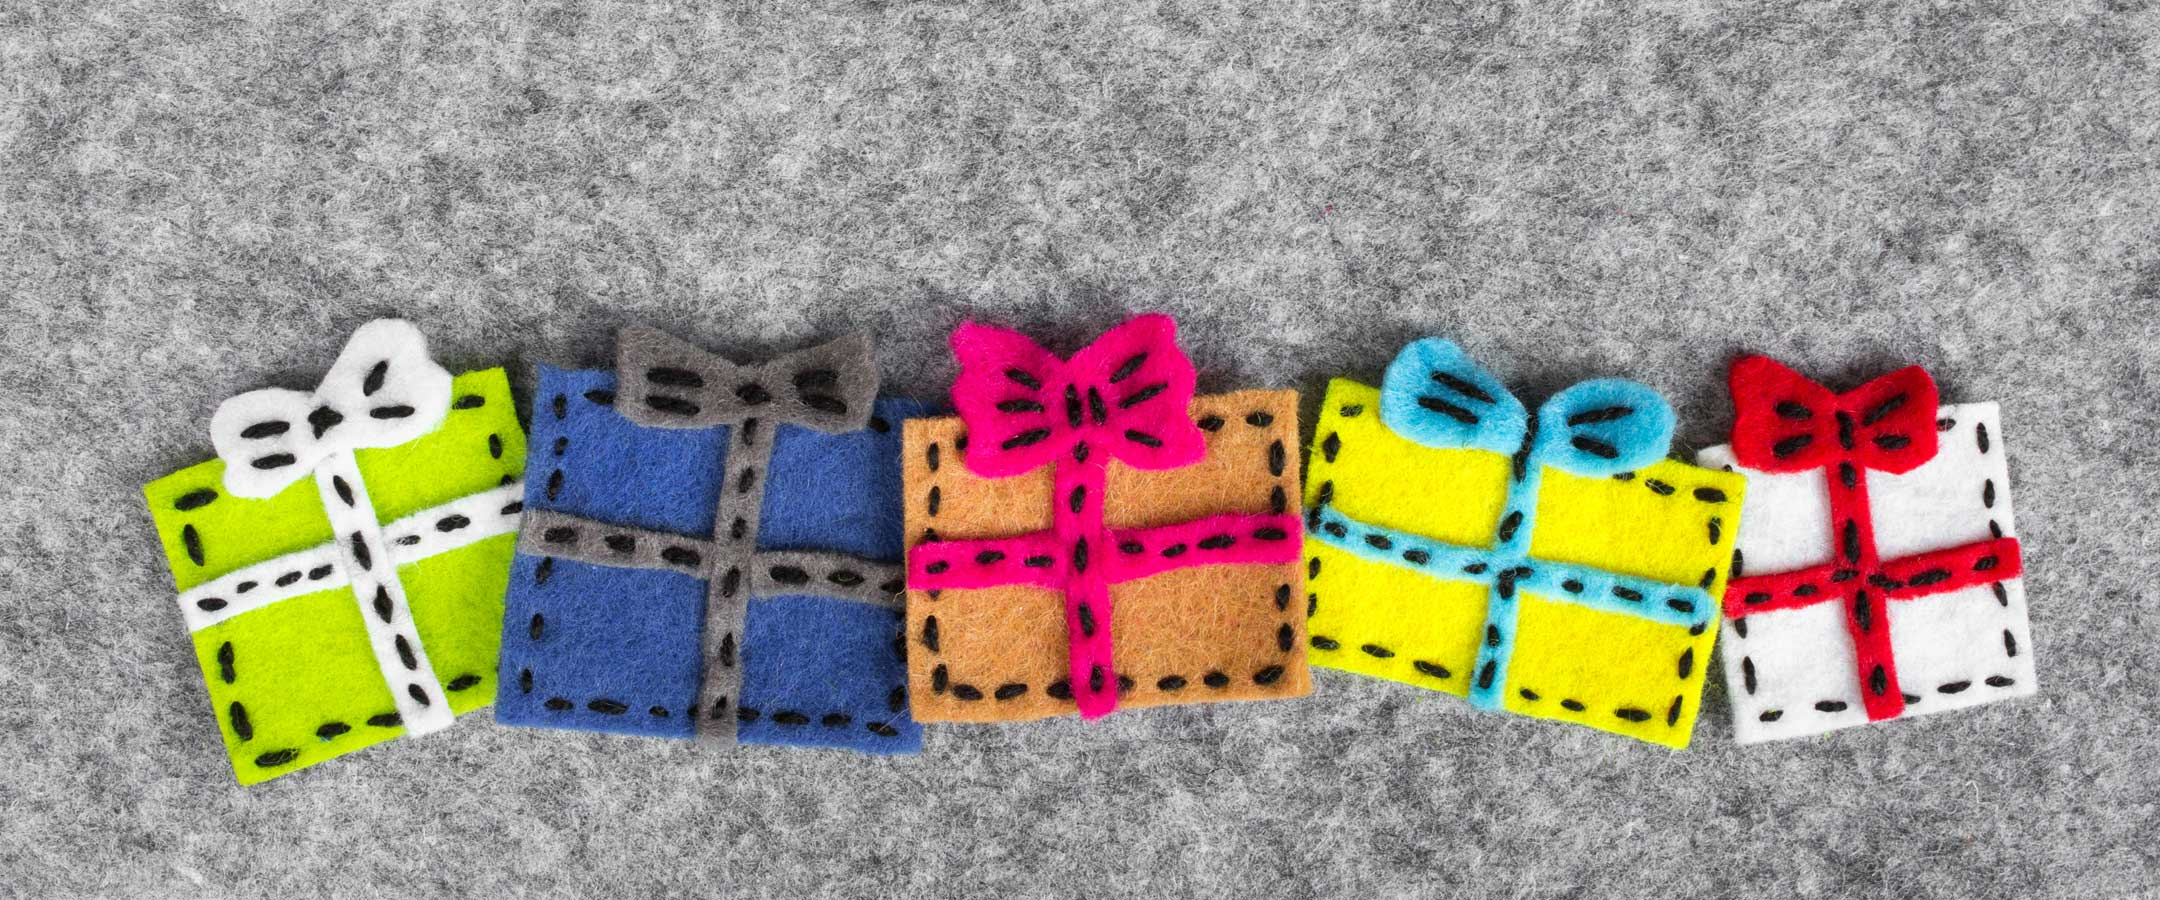 colourful-felt-gifts